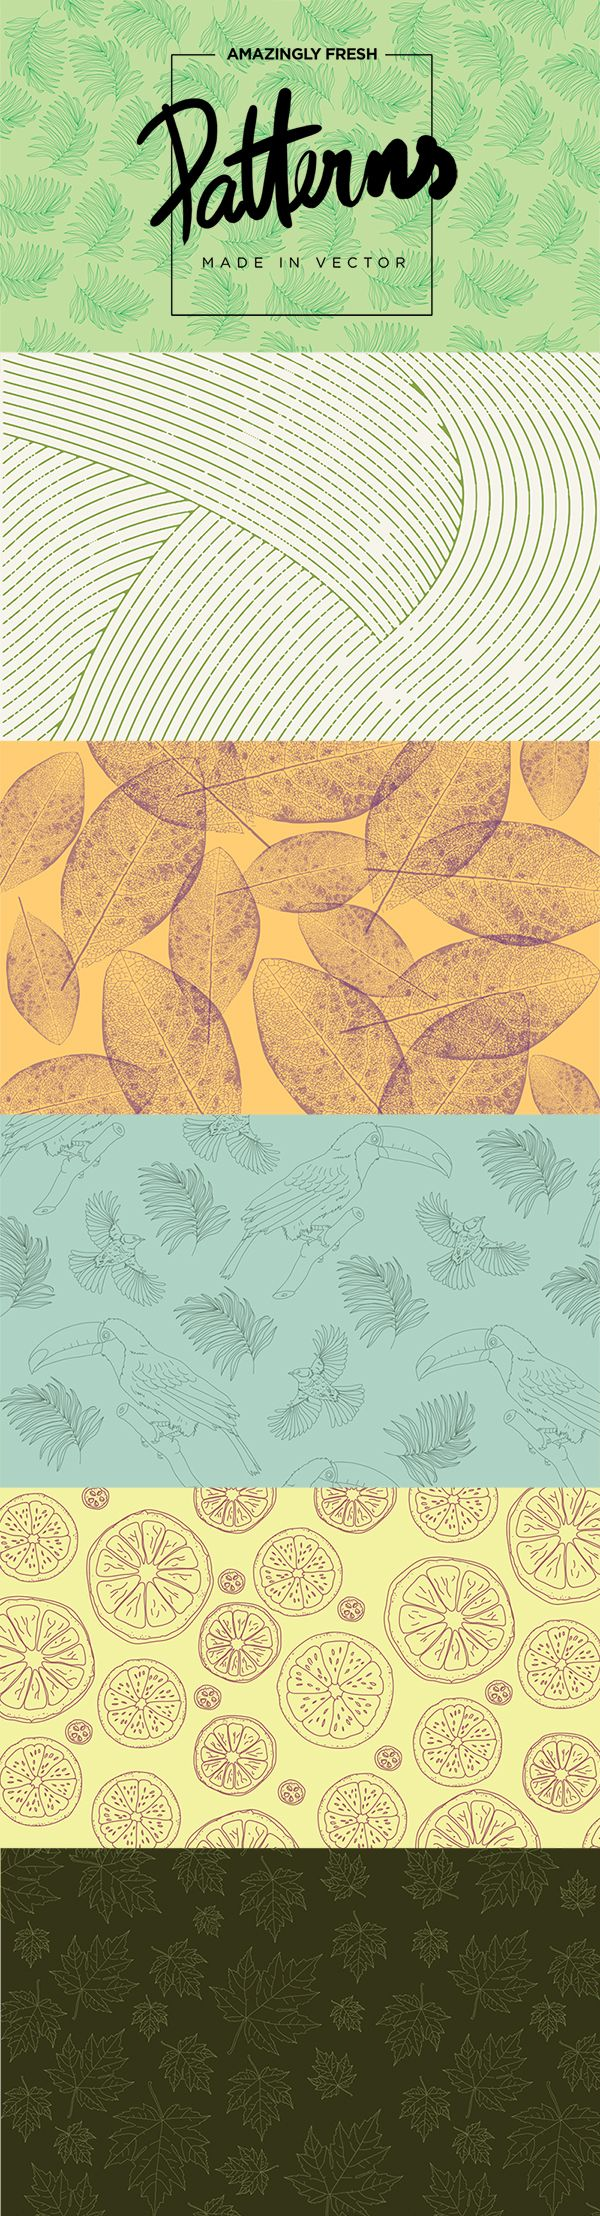 6 FRESH PATTERNS IN VECTOR. DOWNLOAD HERE: https://creativemarket.com/jack.red/171273-6-Fresh-Patterns-in-VECTOR%21 #summer #patterns #textures #vector #free